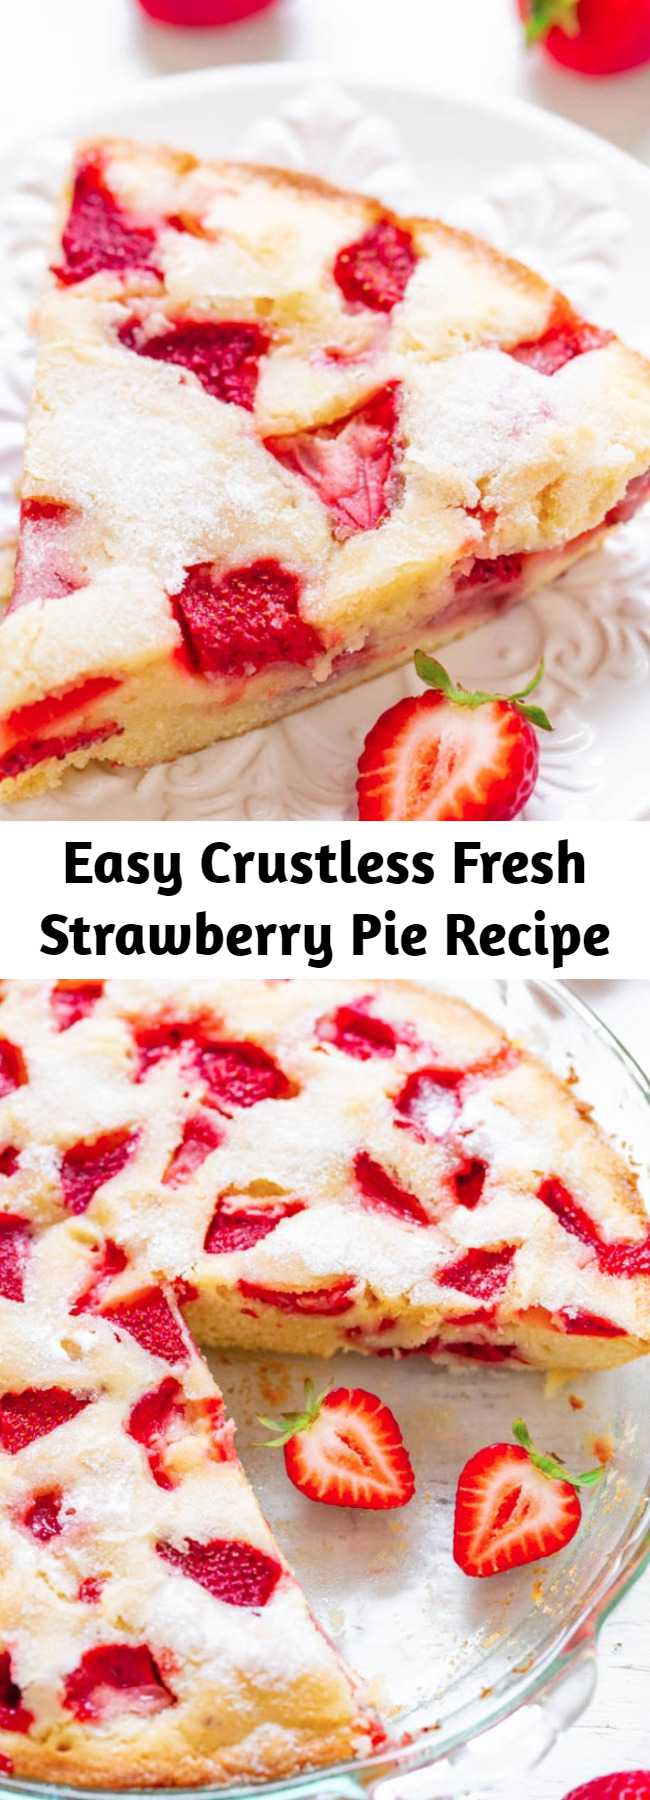 Easy Crustless Fresh Strawberry Pie Recipe - FAST, super EASY, no-mixer dessert that's perfect for summer entertaining, picnics, or potlucks!! Somewhere in between pie, cake, and blondies is what you get with this FABULOUS recipe! Take advantage of those FRESH strawberries!!